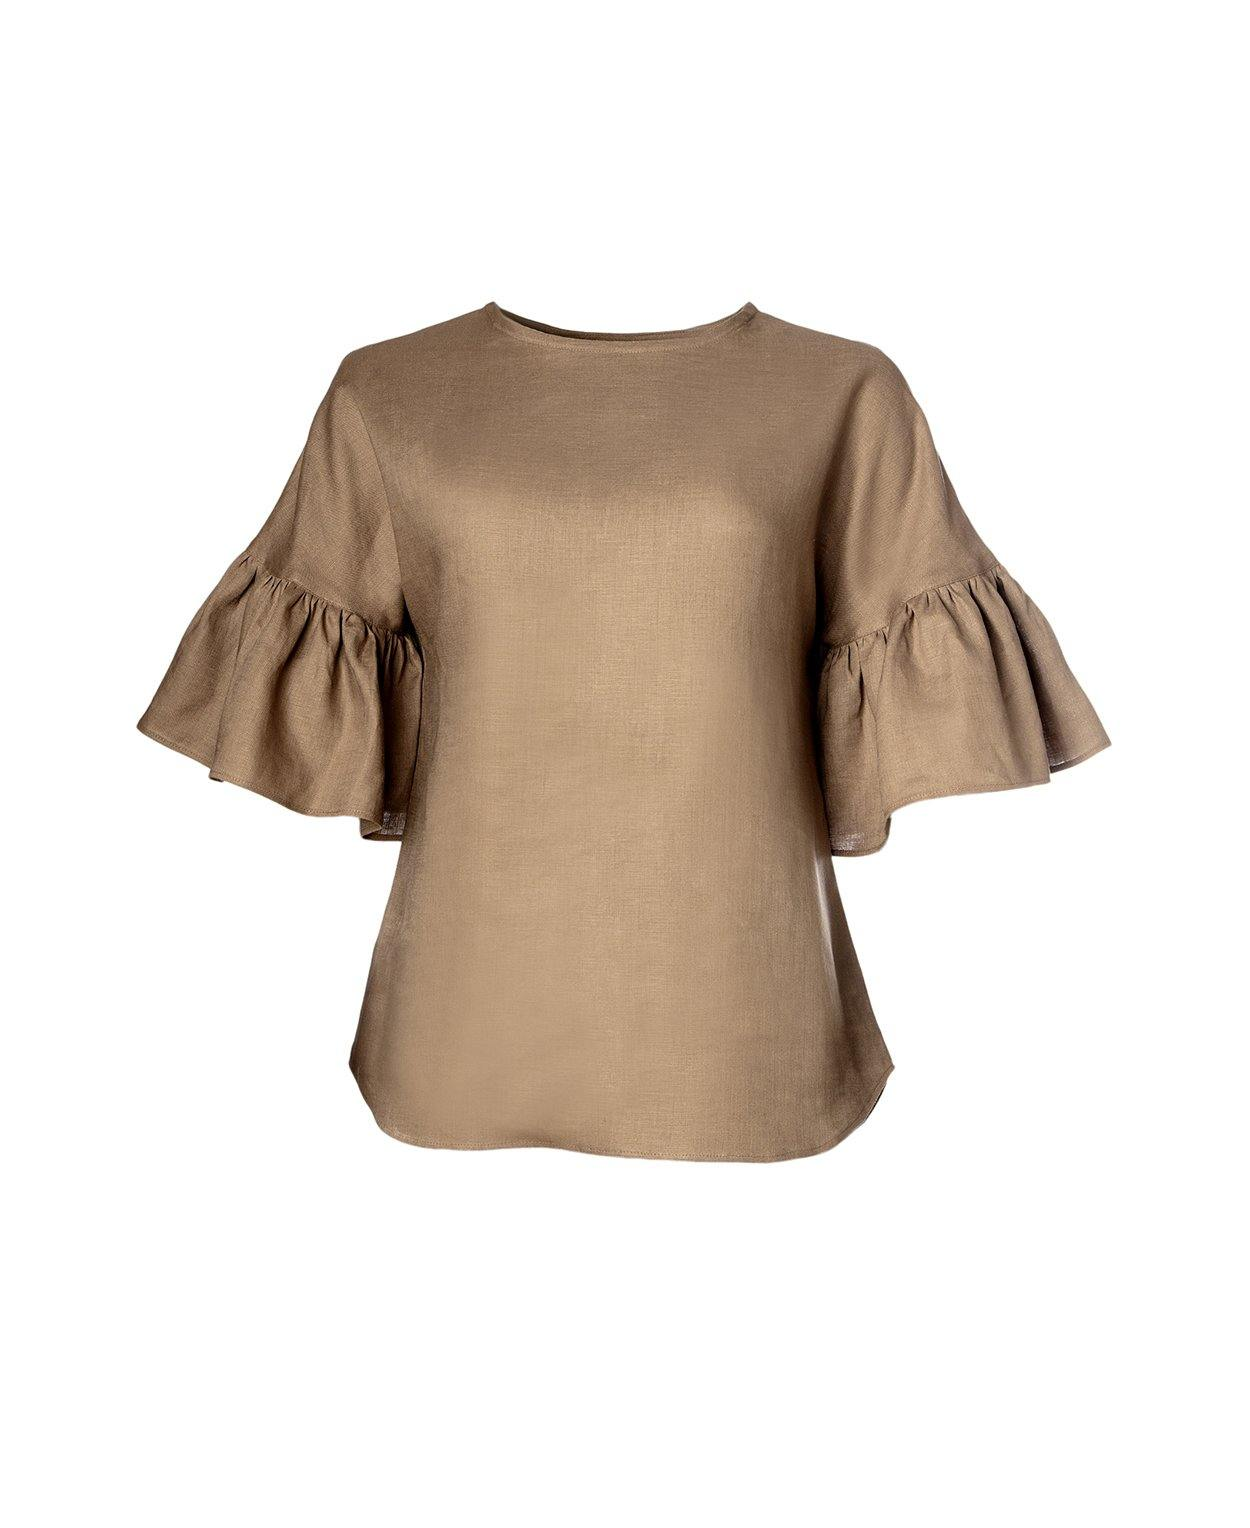 Liia Blouse Light Sand